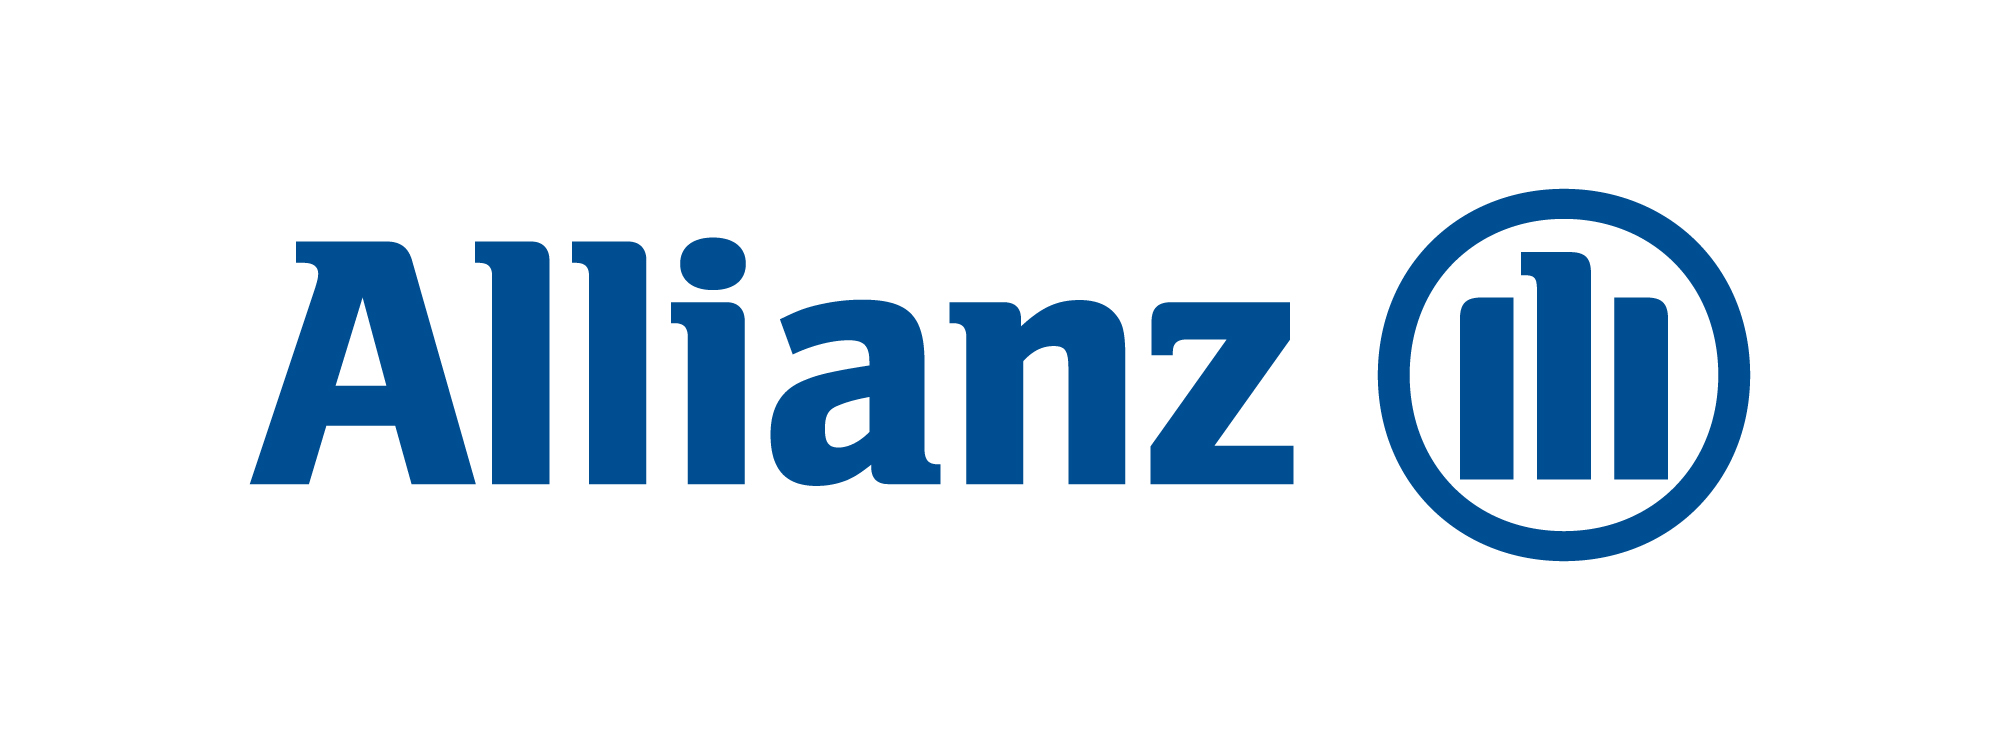 recrutement-agf-allianz